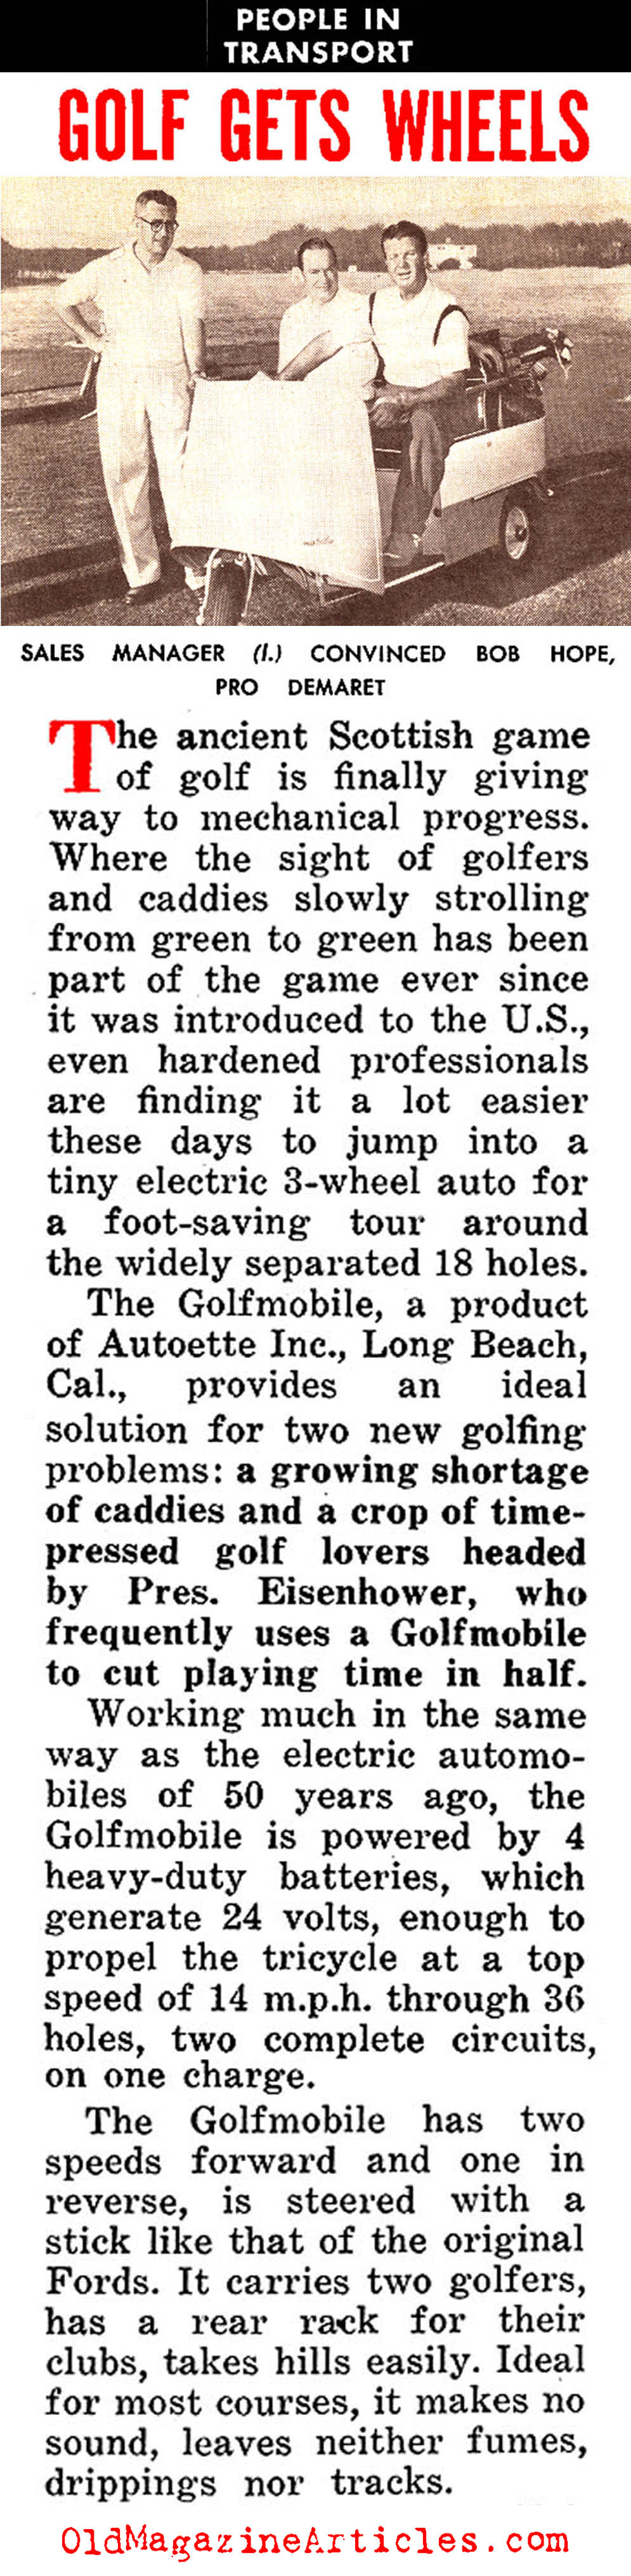 Golf Gets Easier... (People Today, 1954)